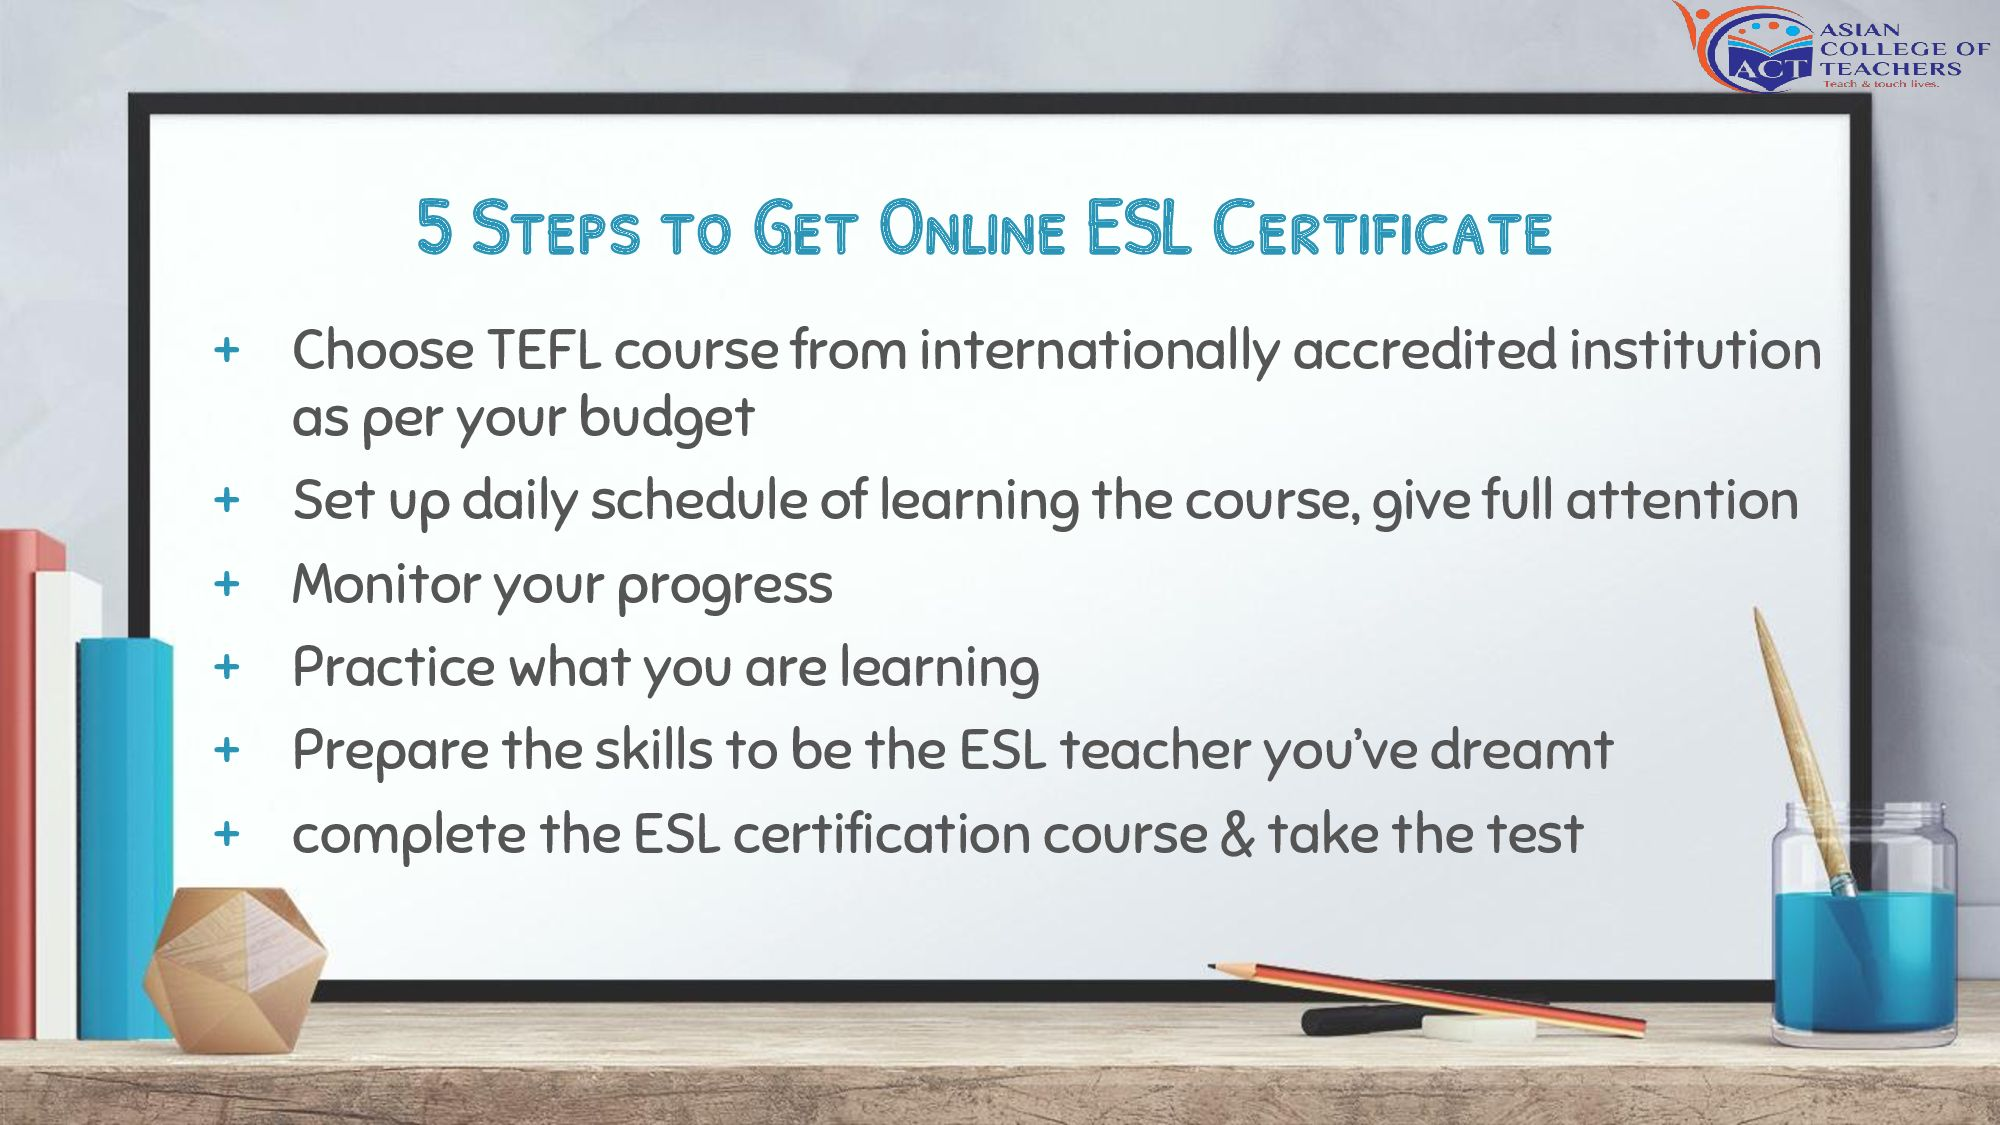 5 Steps To Get Online Esl Certificate To Become An Esl Teacher Follow These Steps Take A Bachelor S Degree Course From A Regionally O Esl Teachers Teacher Esl